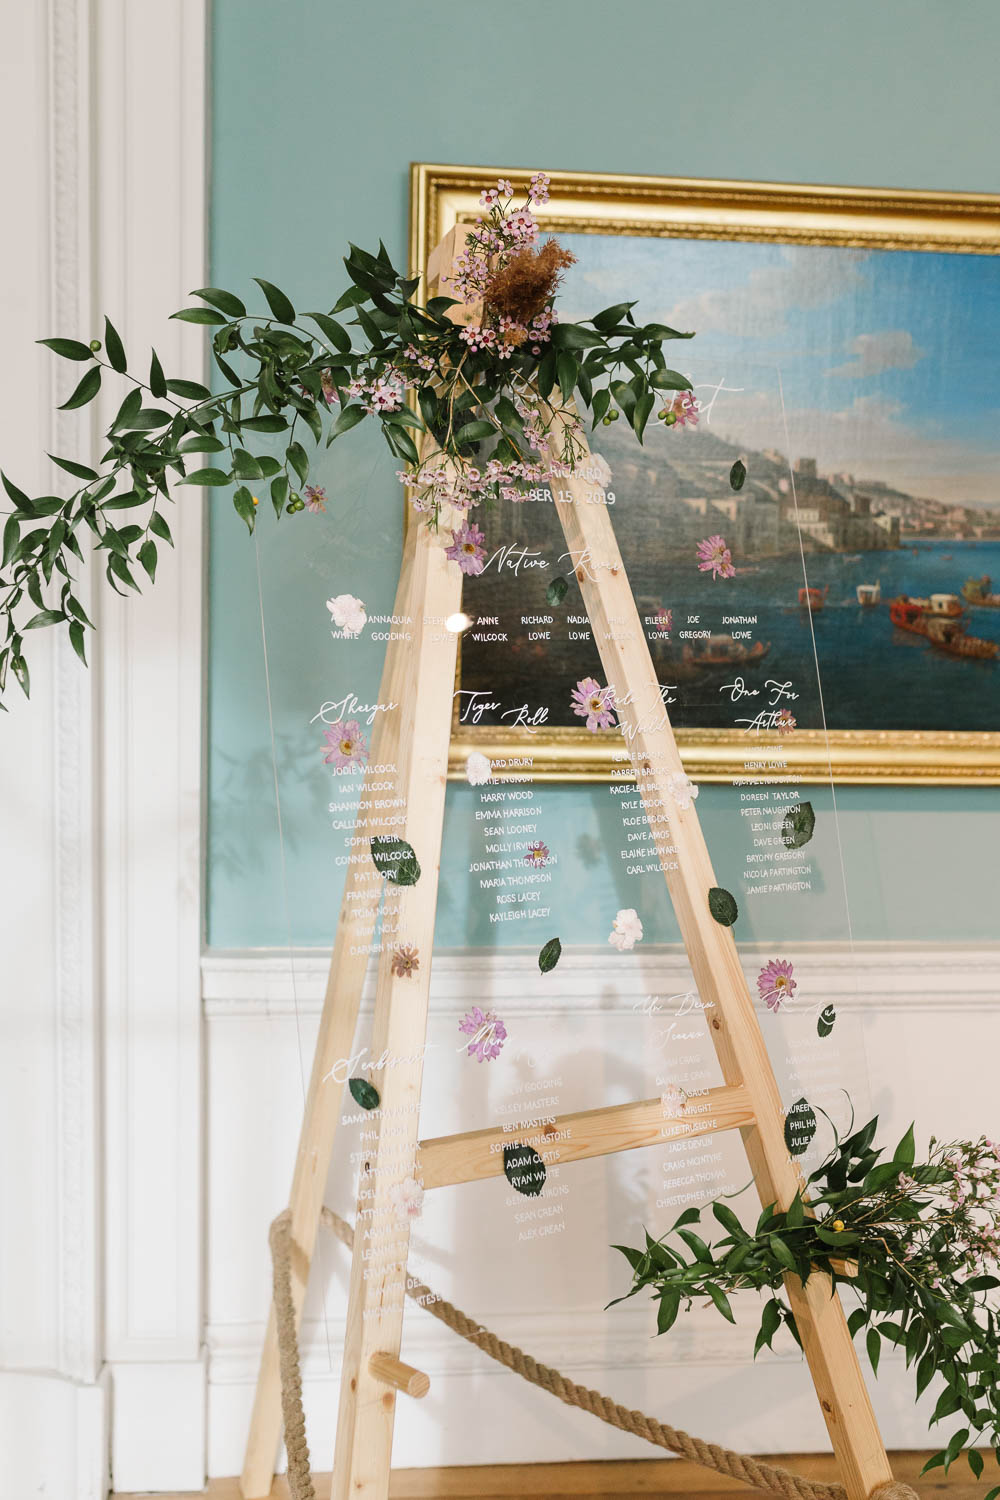 Table Plan Sign Signs Signage Perspex Acrylic Greenery Compton Verney Wedding Danielle Smith Photography